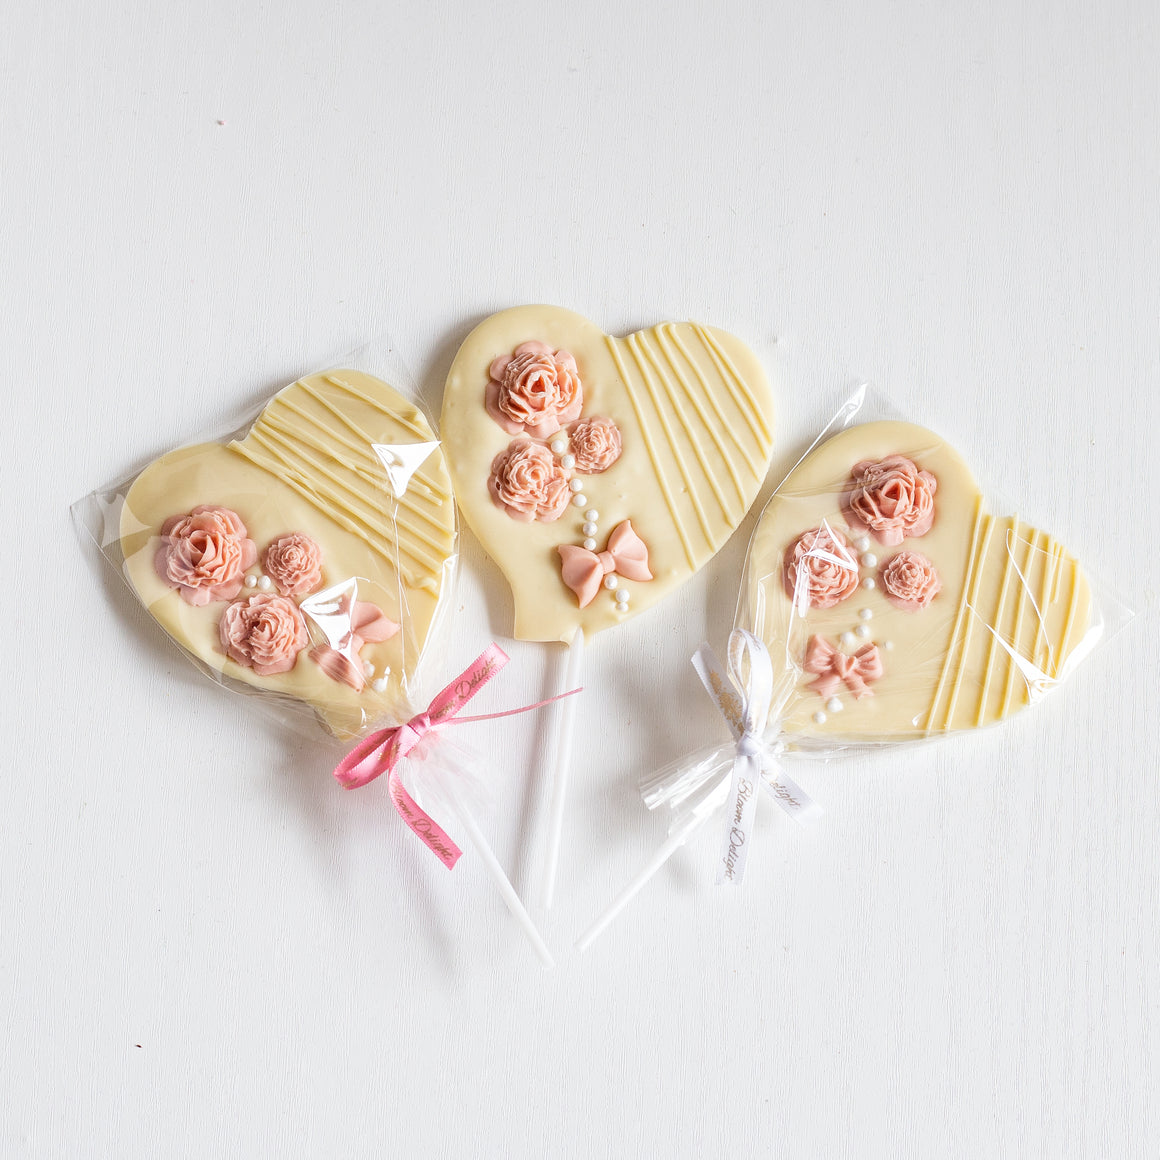 handcrafted white chocolate party baby and bridal shower favours artisan heart